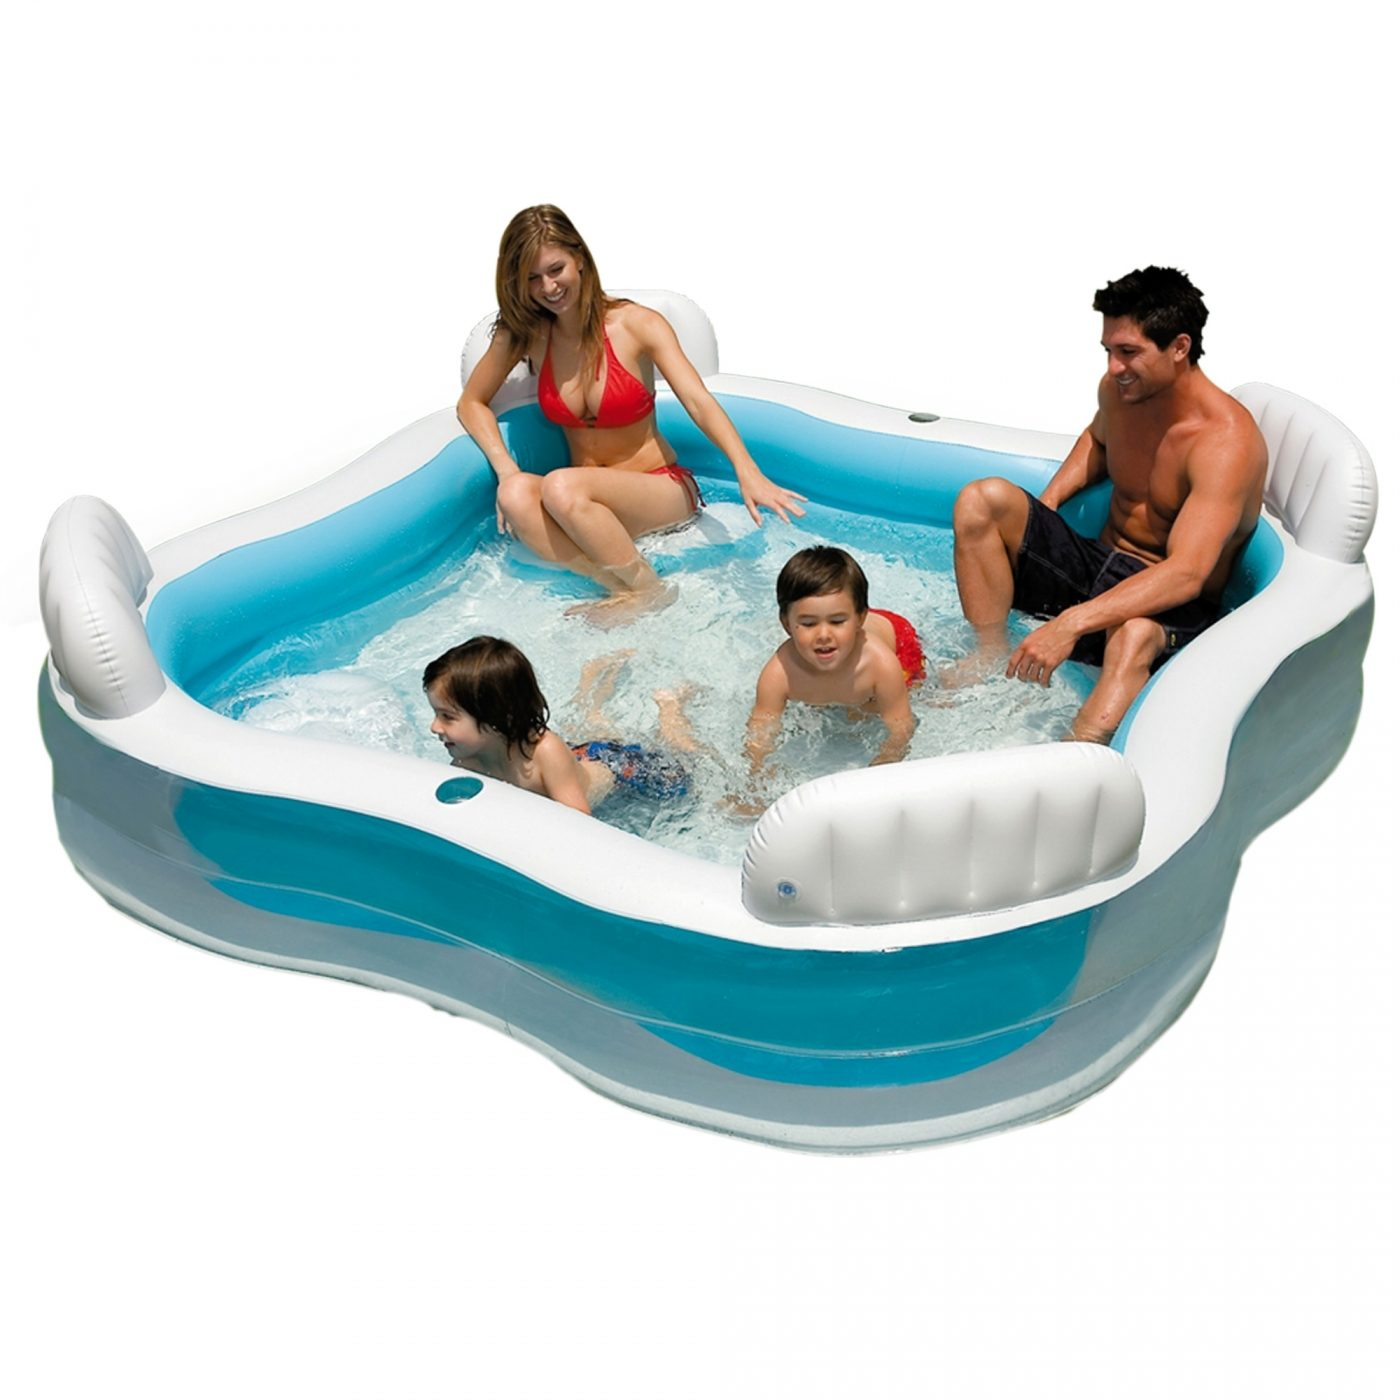 Piscina Intex Infantil Piscina Con Asientos Y Respaldos Intex Por 36 95 En